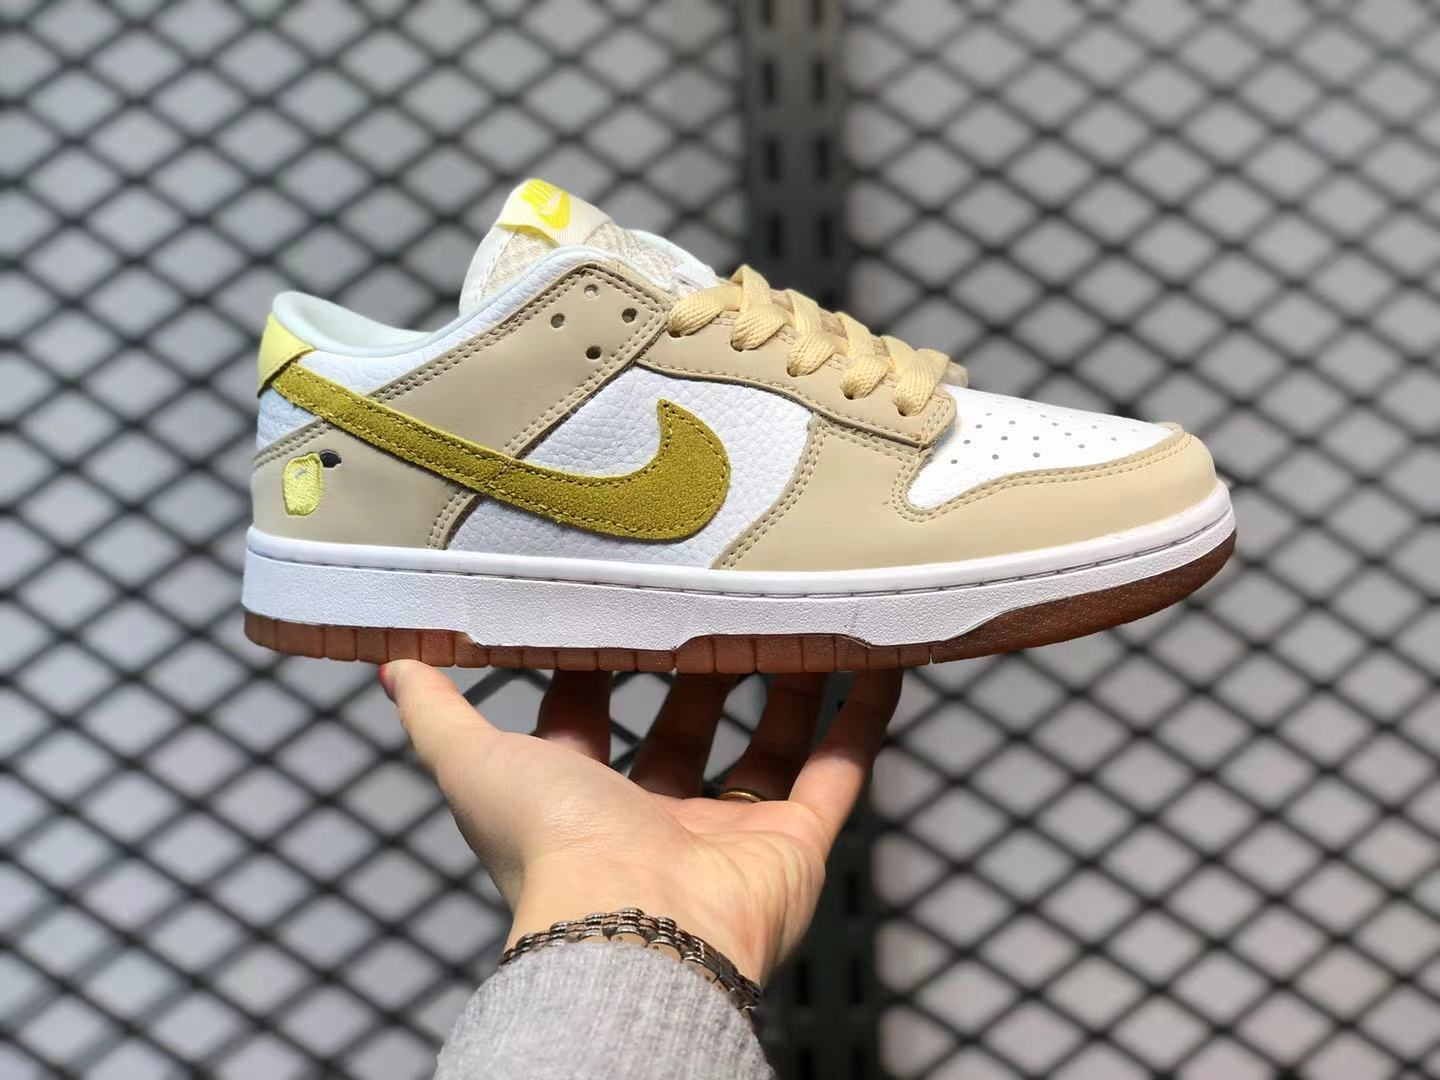 Nike Dunk Low Lemon Drop Opti Yellow-Sail-Zitron DJ6902-700 For Sale